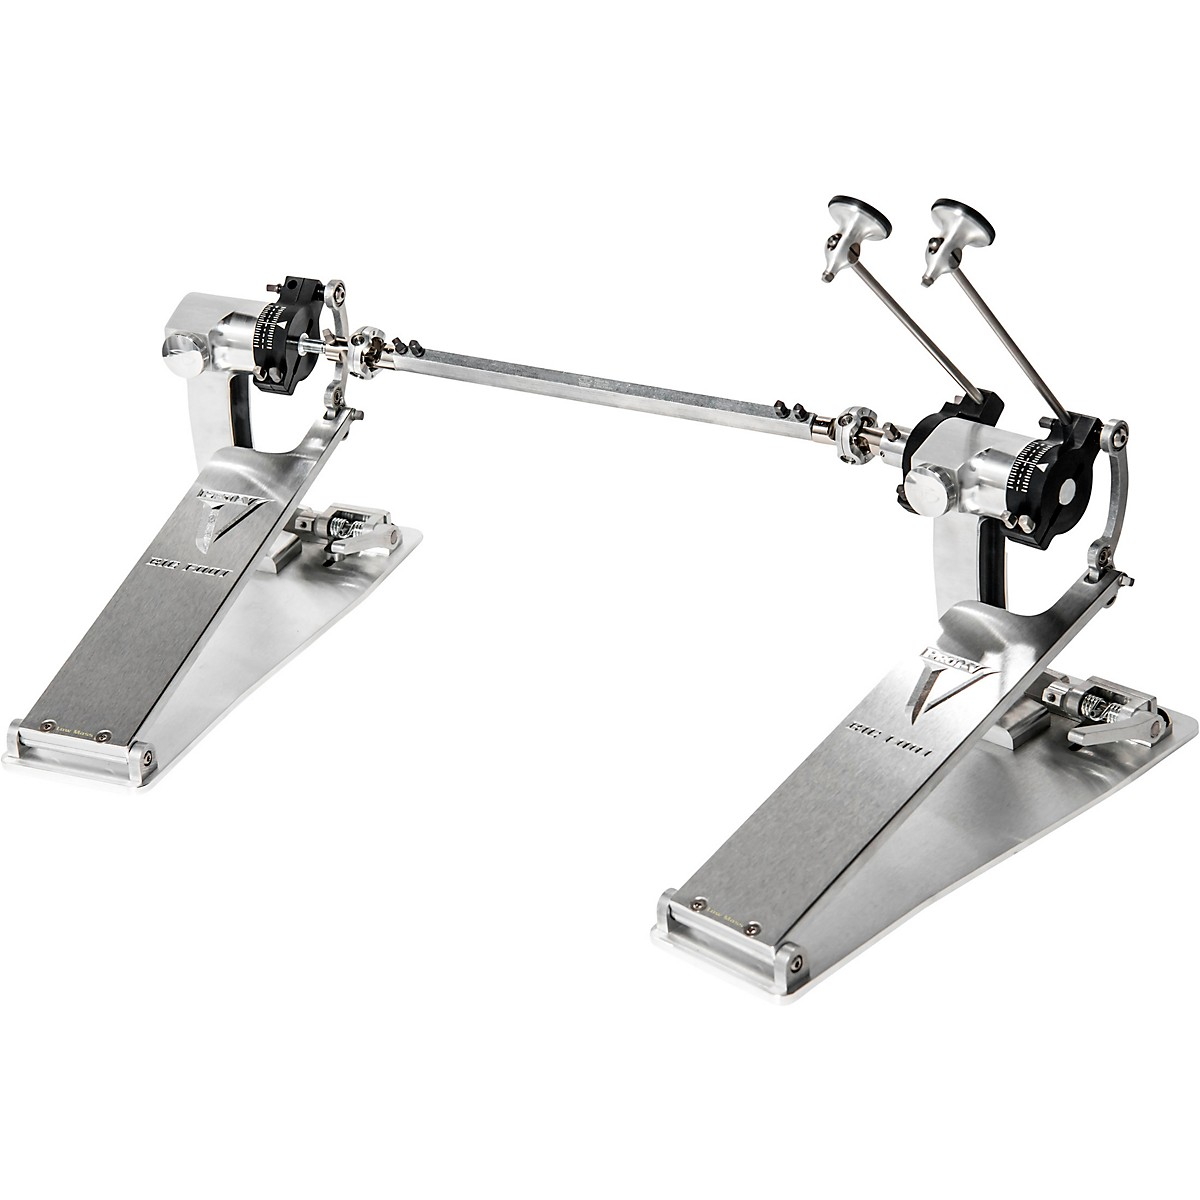 Trick Trick Drums Pro1-V BigFoot Low Mass Direct Drive Double Bass Drum Pedal